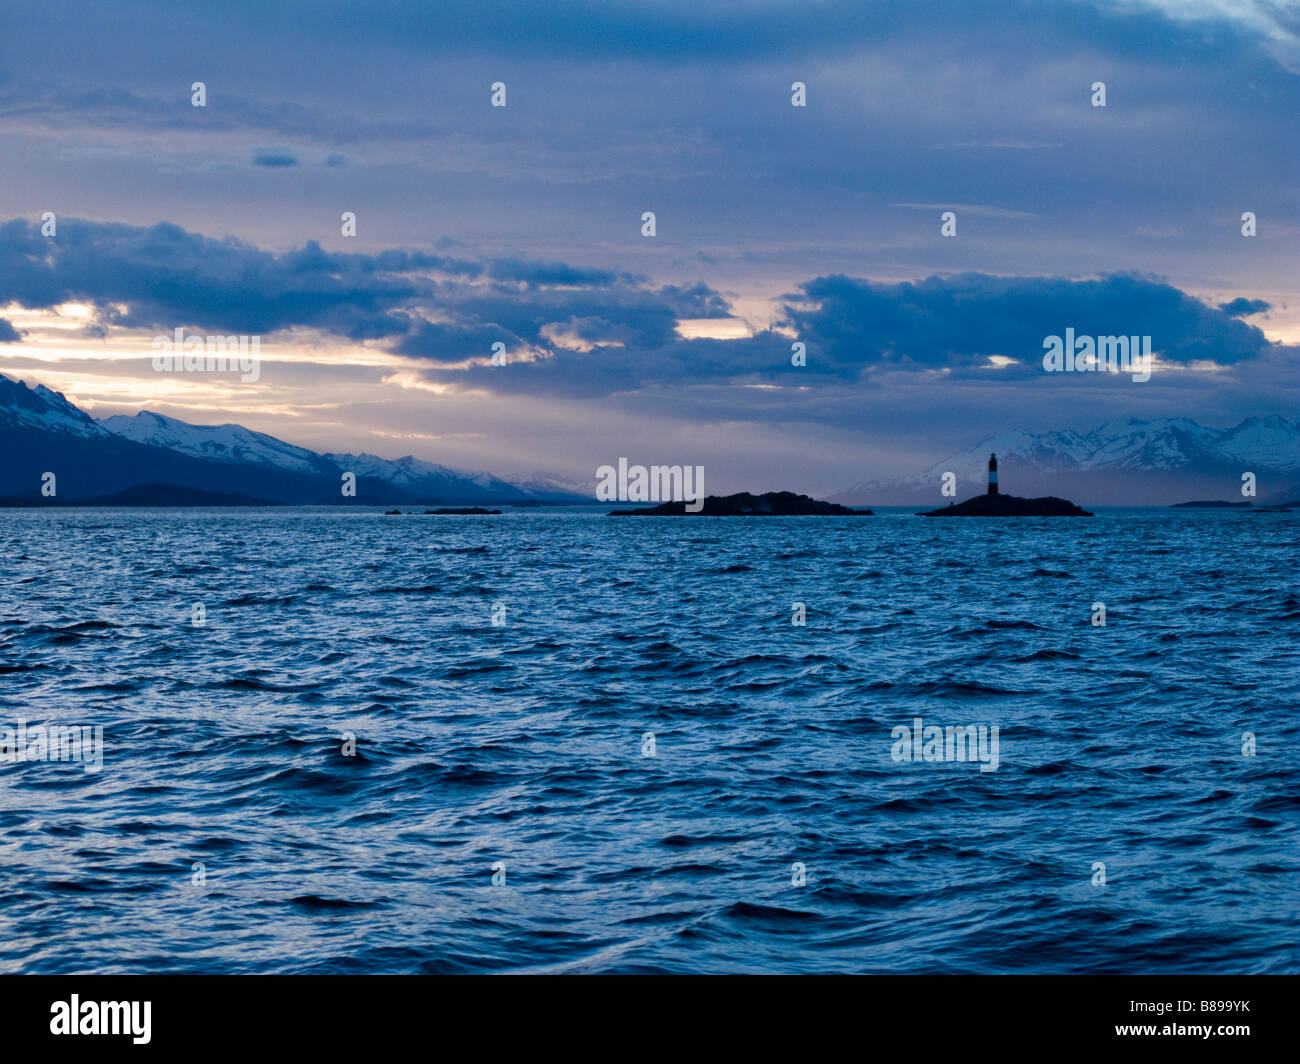 Ushuaia Patagonia Chile seen from the sea - Stock Image